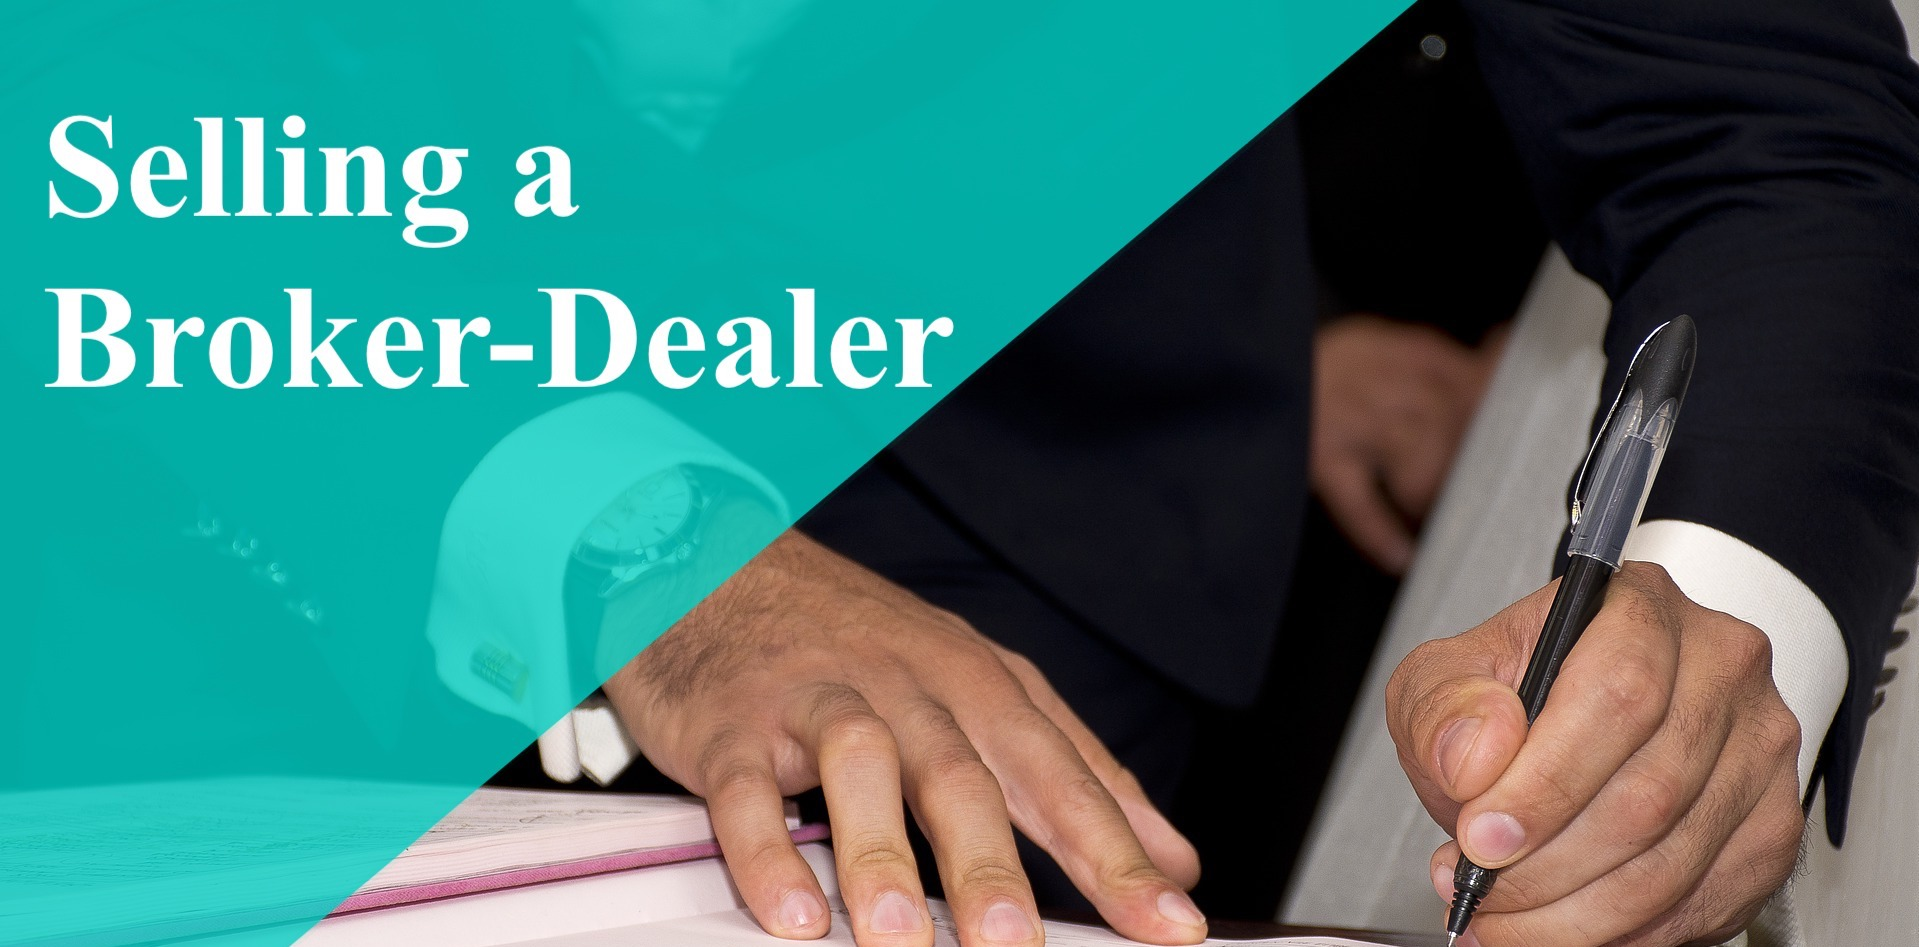 Selling a Broker Dealer